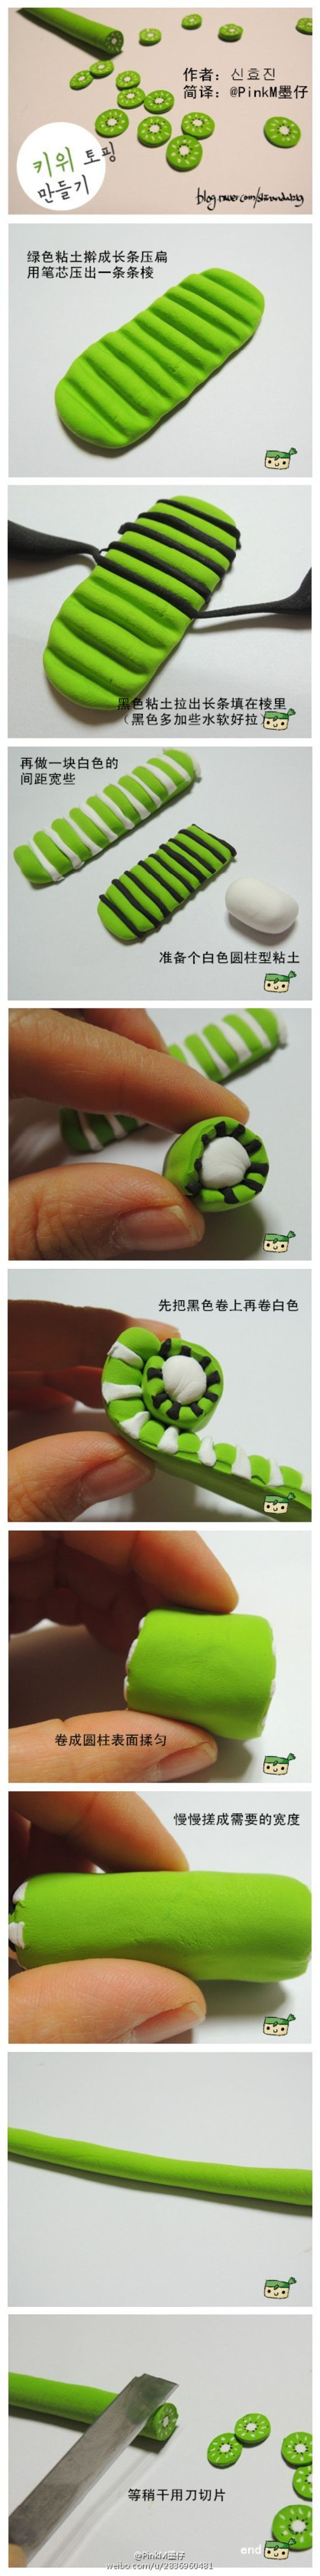 [Tutorial] This clay flower kiwi Article by:PinkM ink Aberdeen